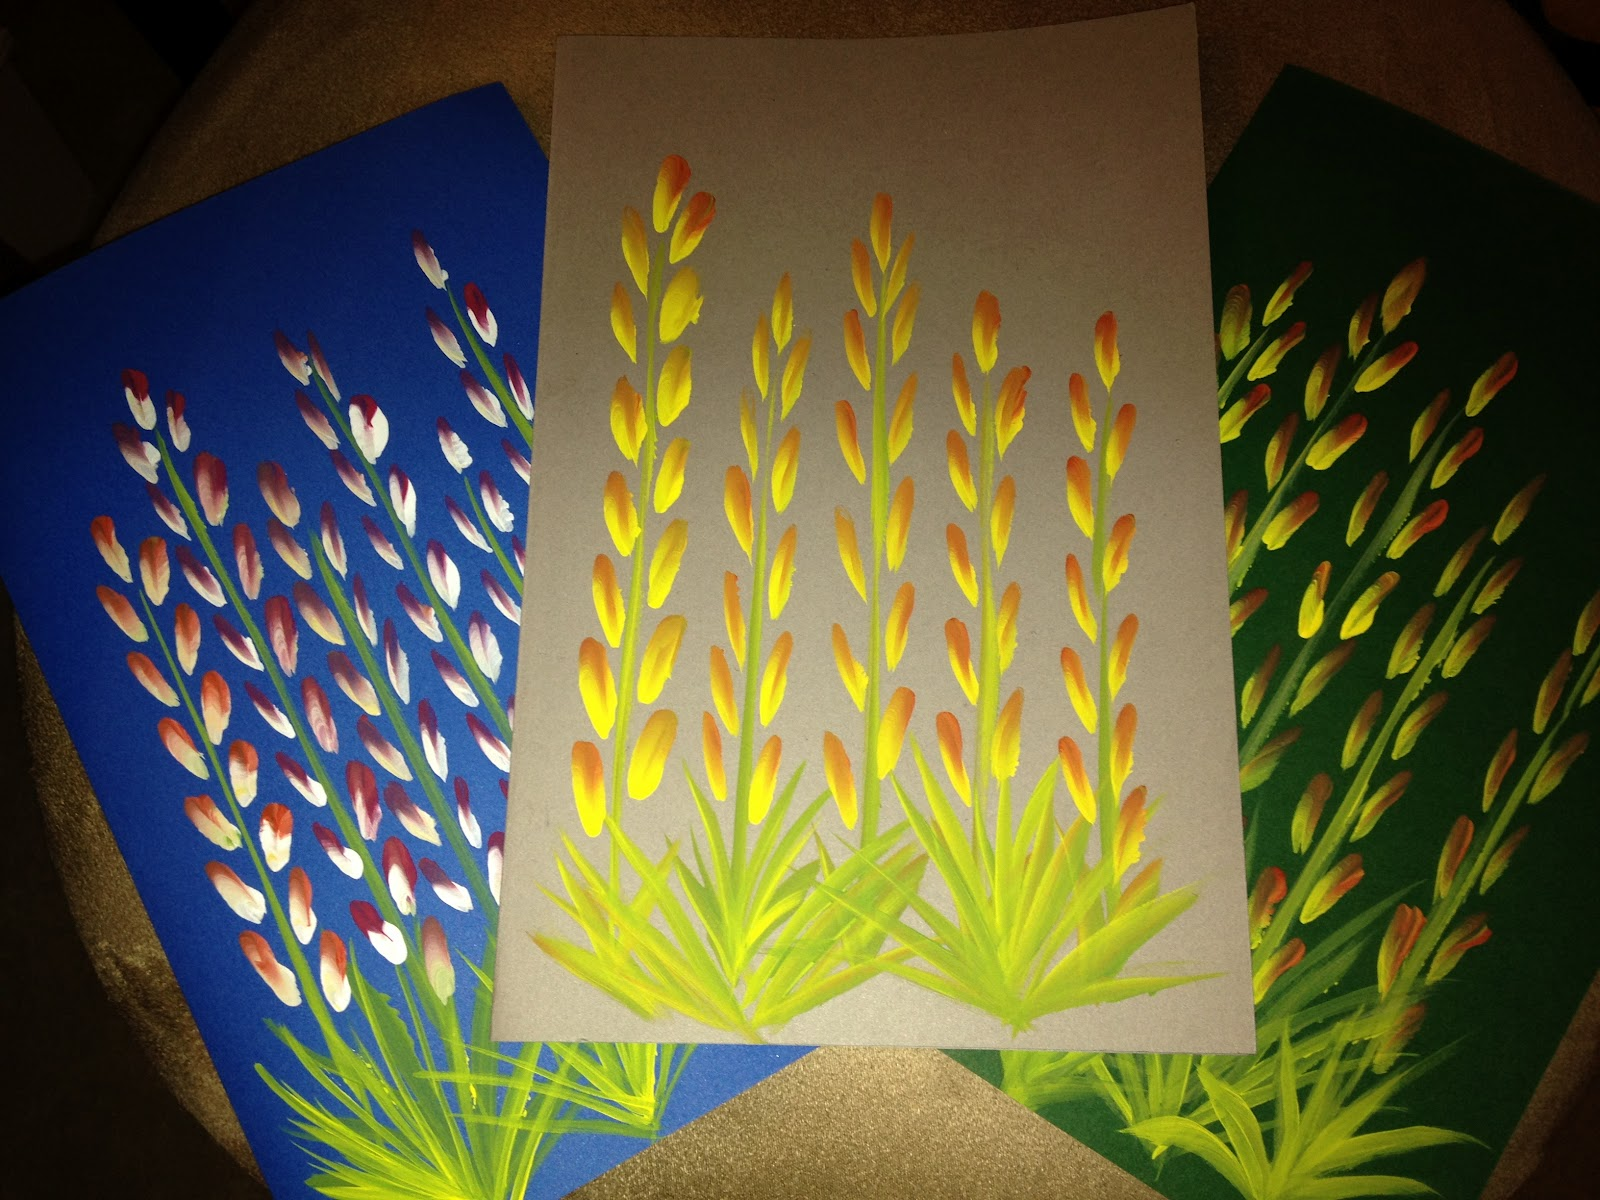 Quillnmore gifts one stroke paintings on greeting cards one stroke paintings on greeting cards kristyandbryce Gallery